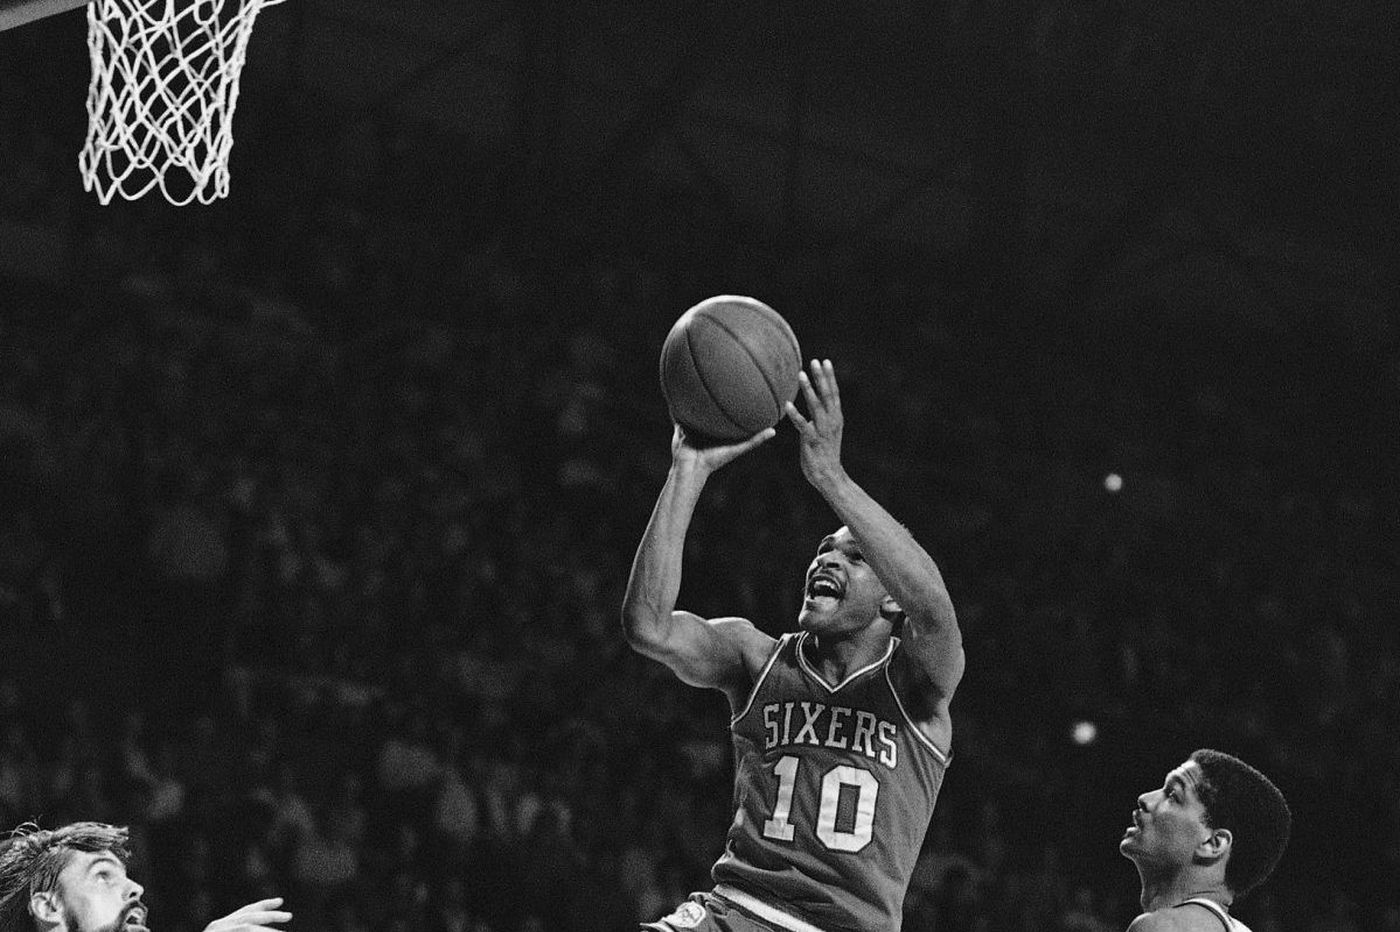 Former Sixers point guard Mo Cheeks Hall of Fame finalist